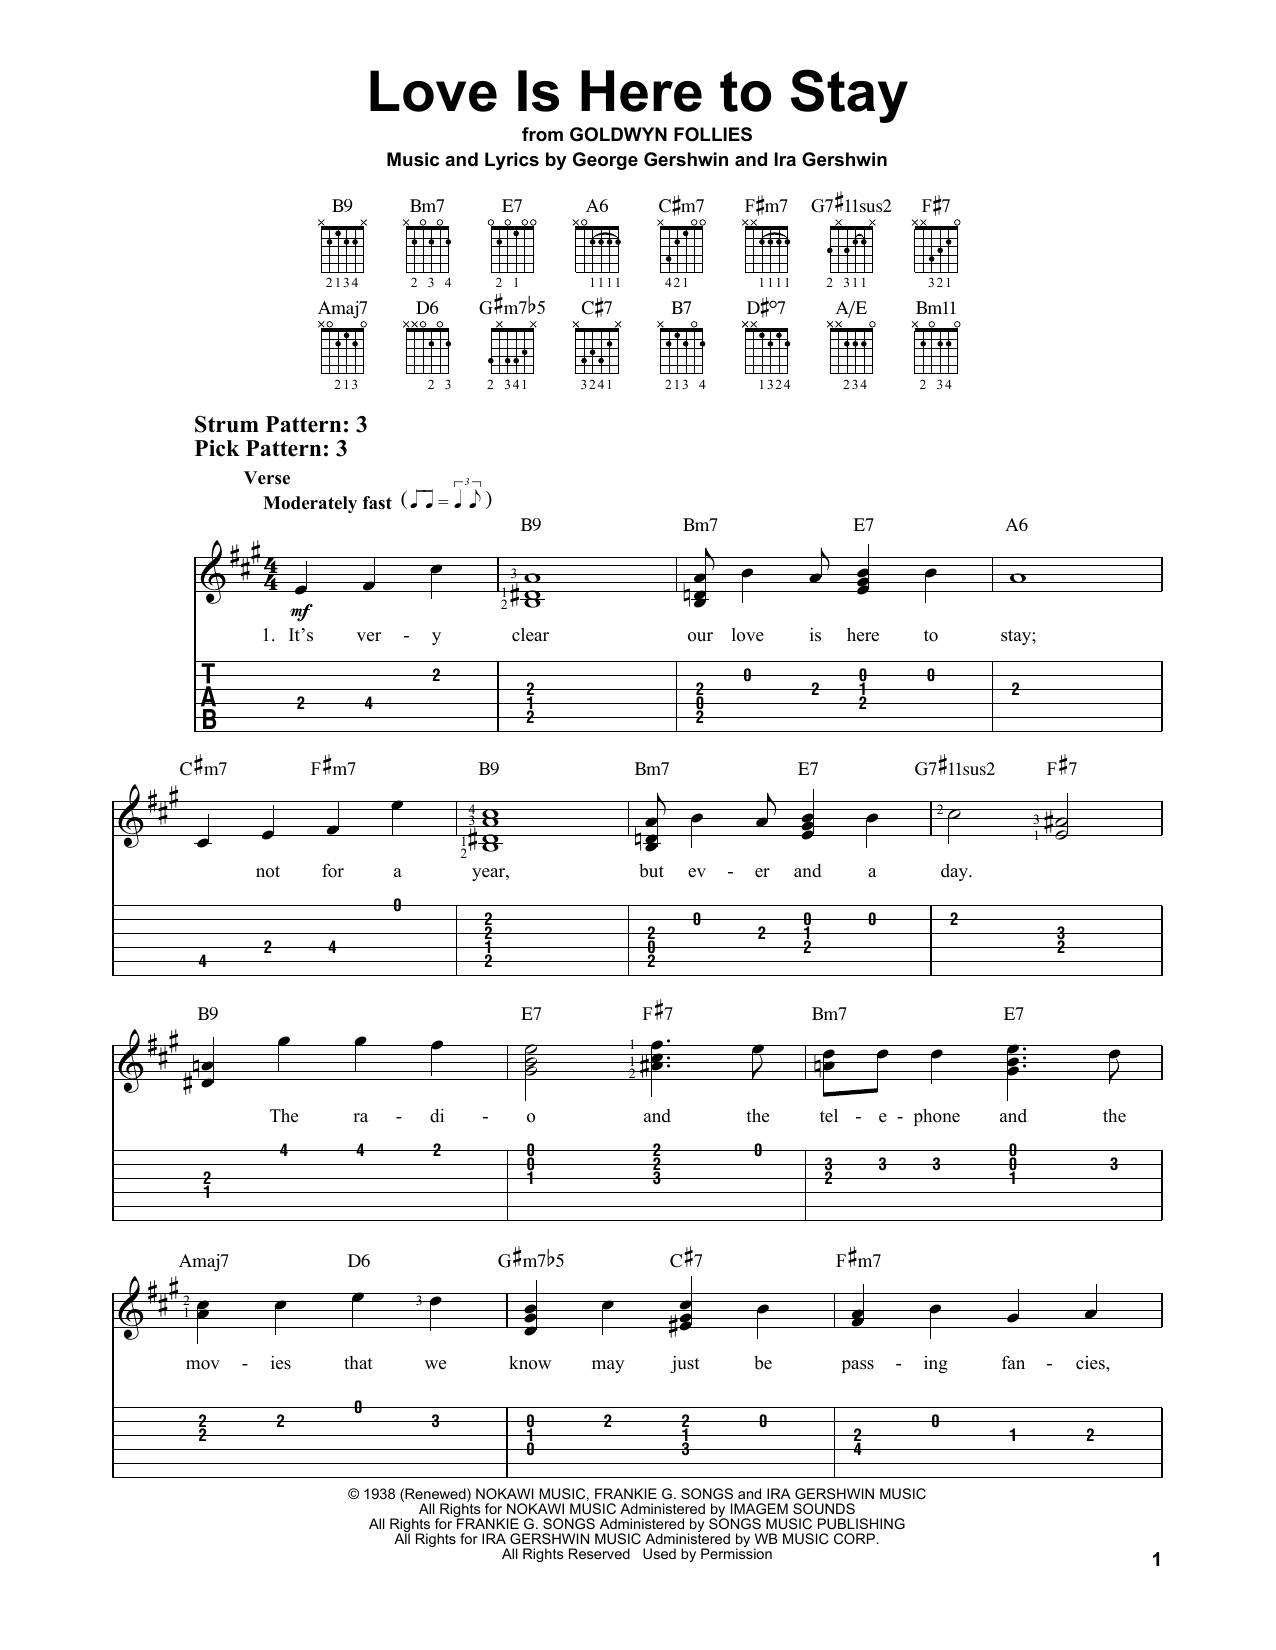 Ira Gershwin Love Is Here To Stay sheet music notes and chords. Download Printable PDF.